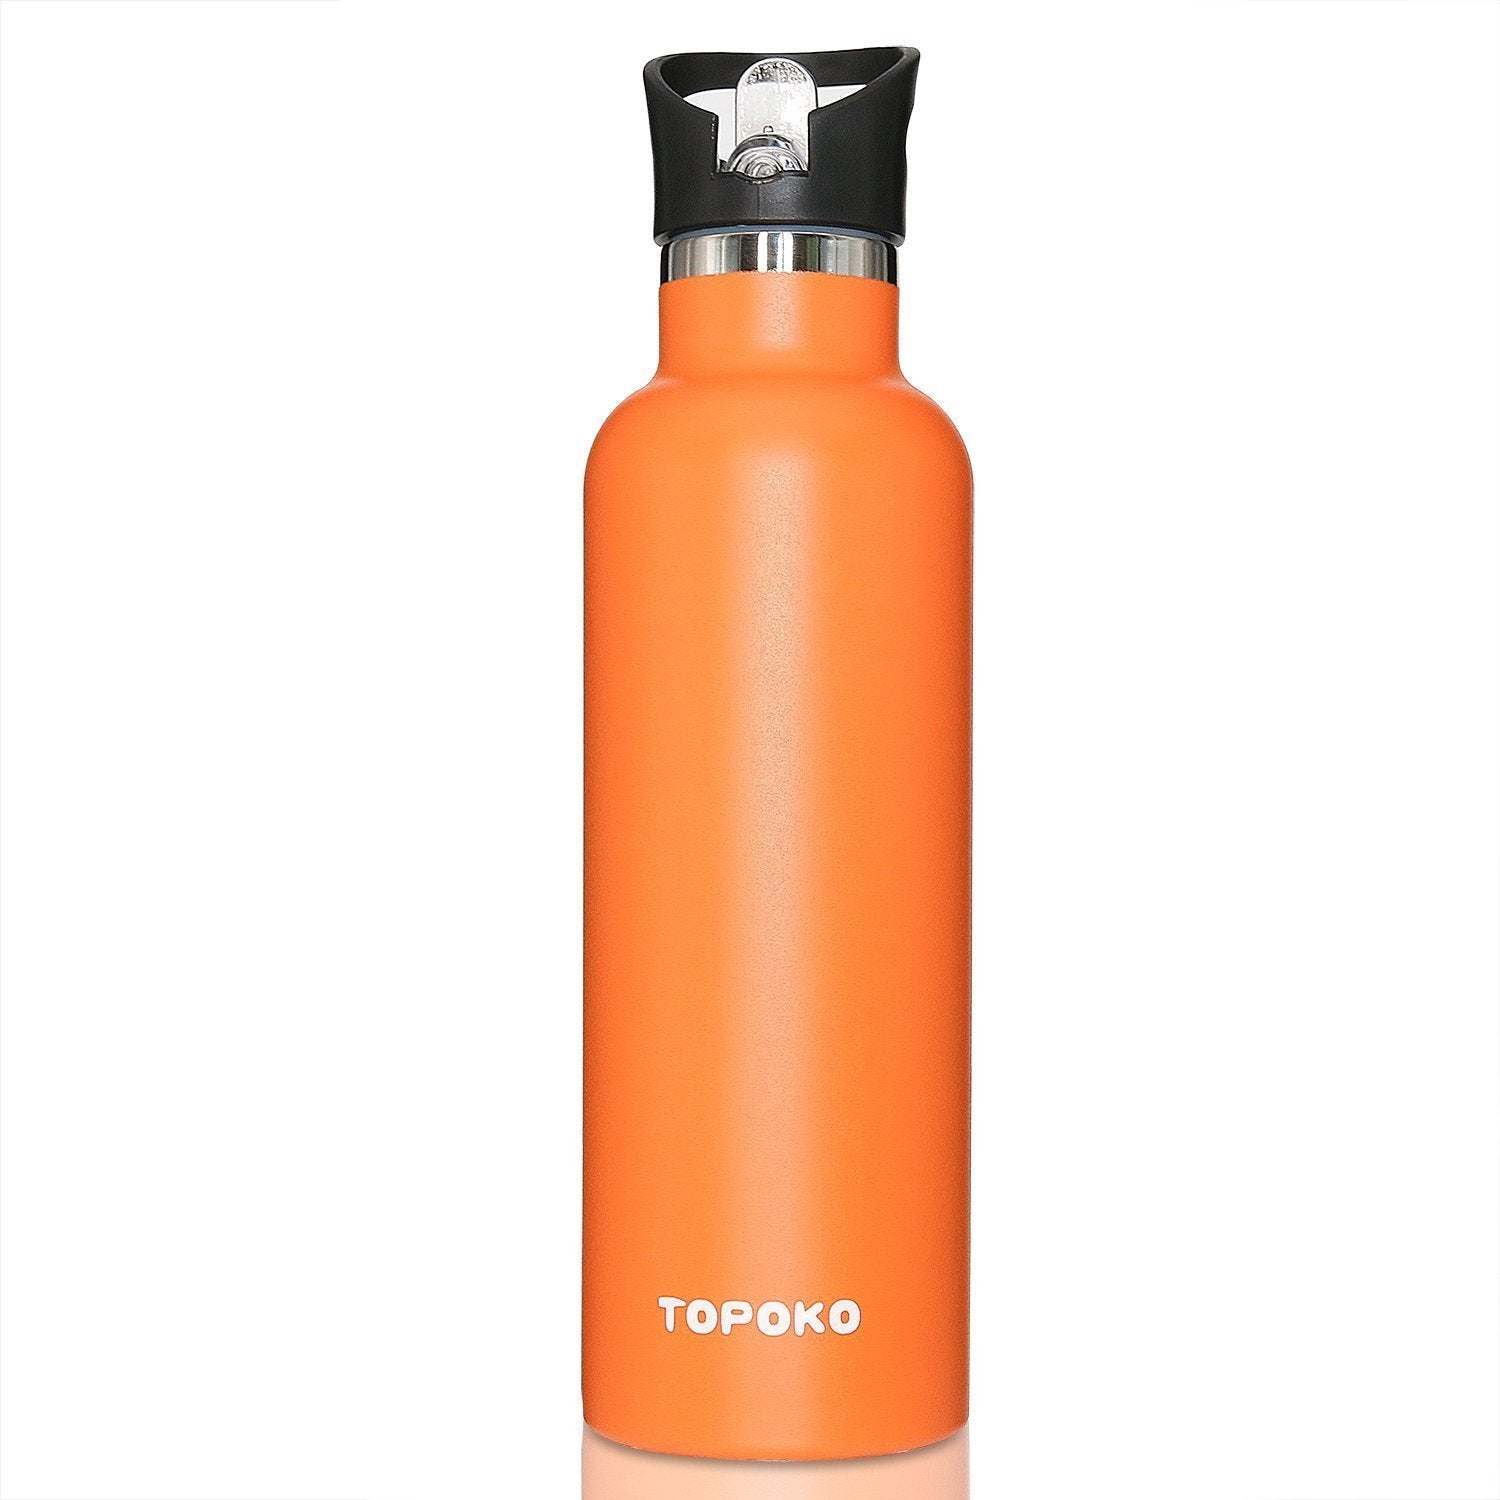 Refurbished TOPOKO 25 OZ Double Wall Insulated Water Bottle 3 pack Random Colors